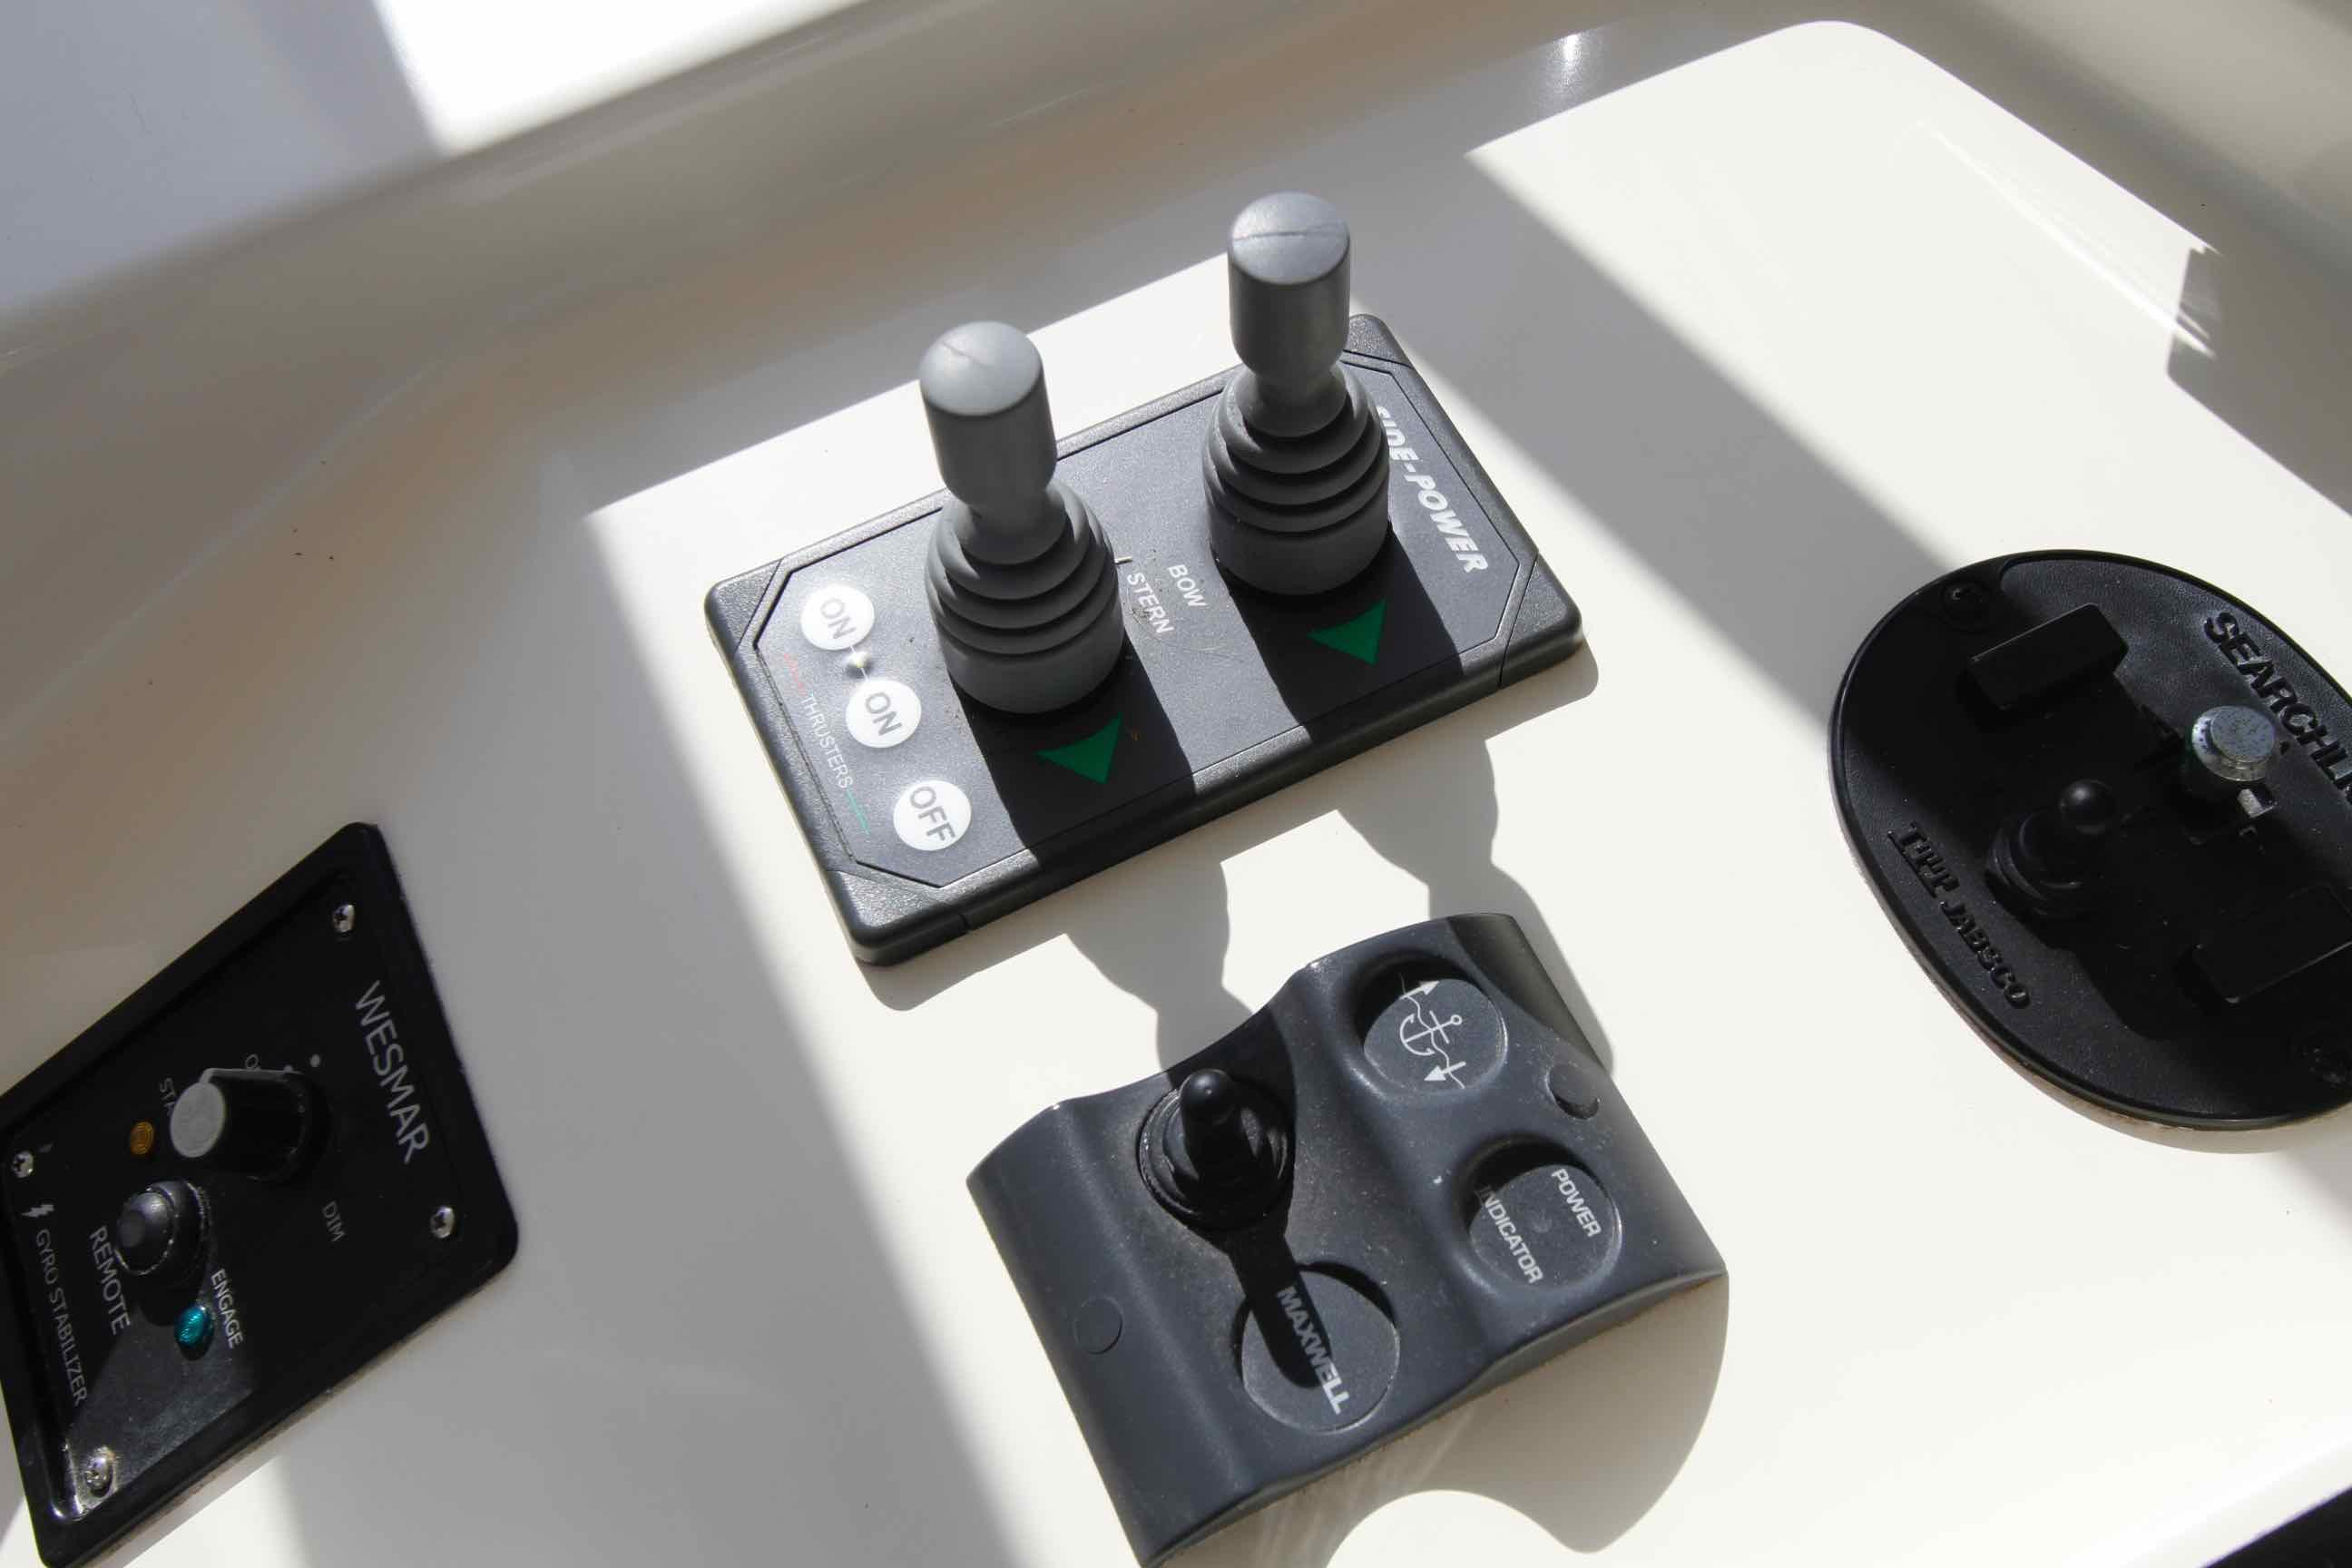 Hampton 558 Pilothouse Bow 'n Stern Thrusters, Windlass Up 'n Down Controls, Westmar Stabilizers